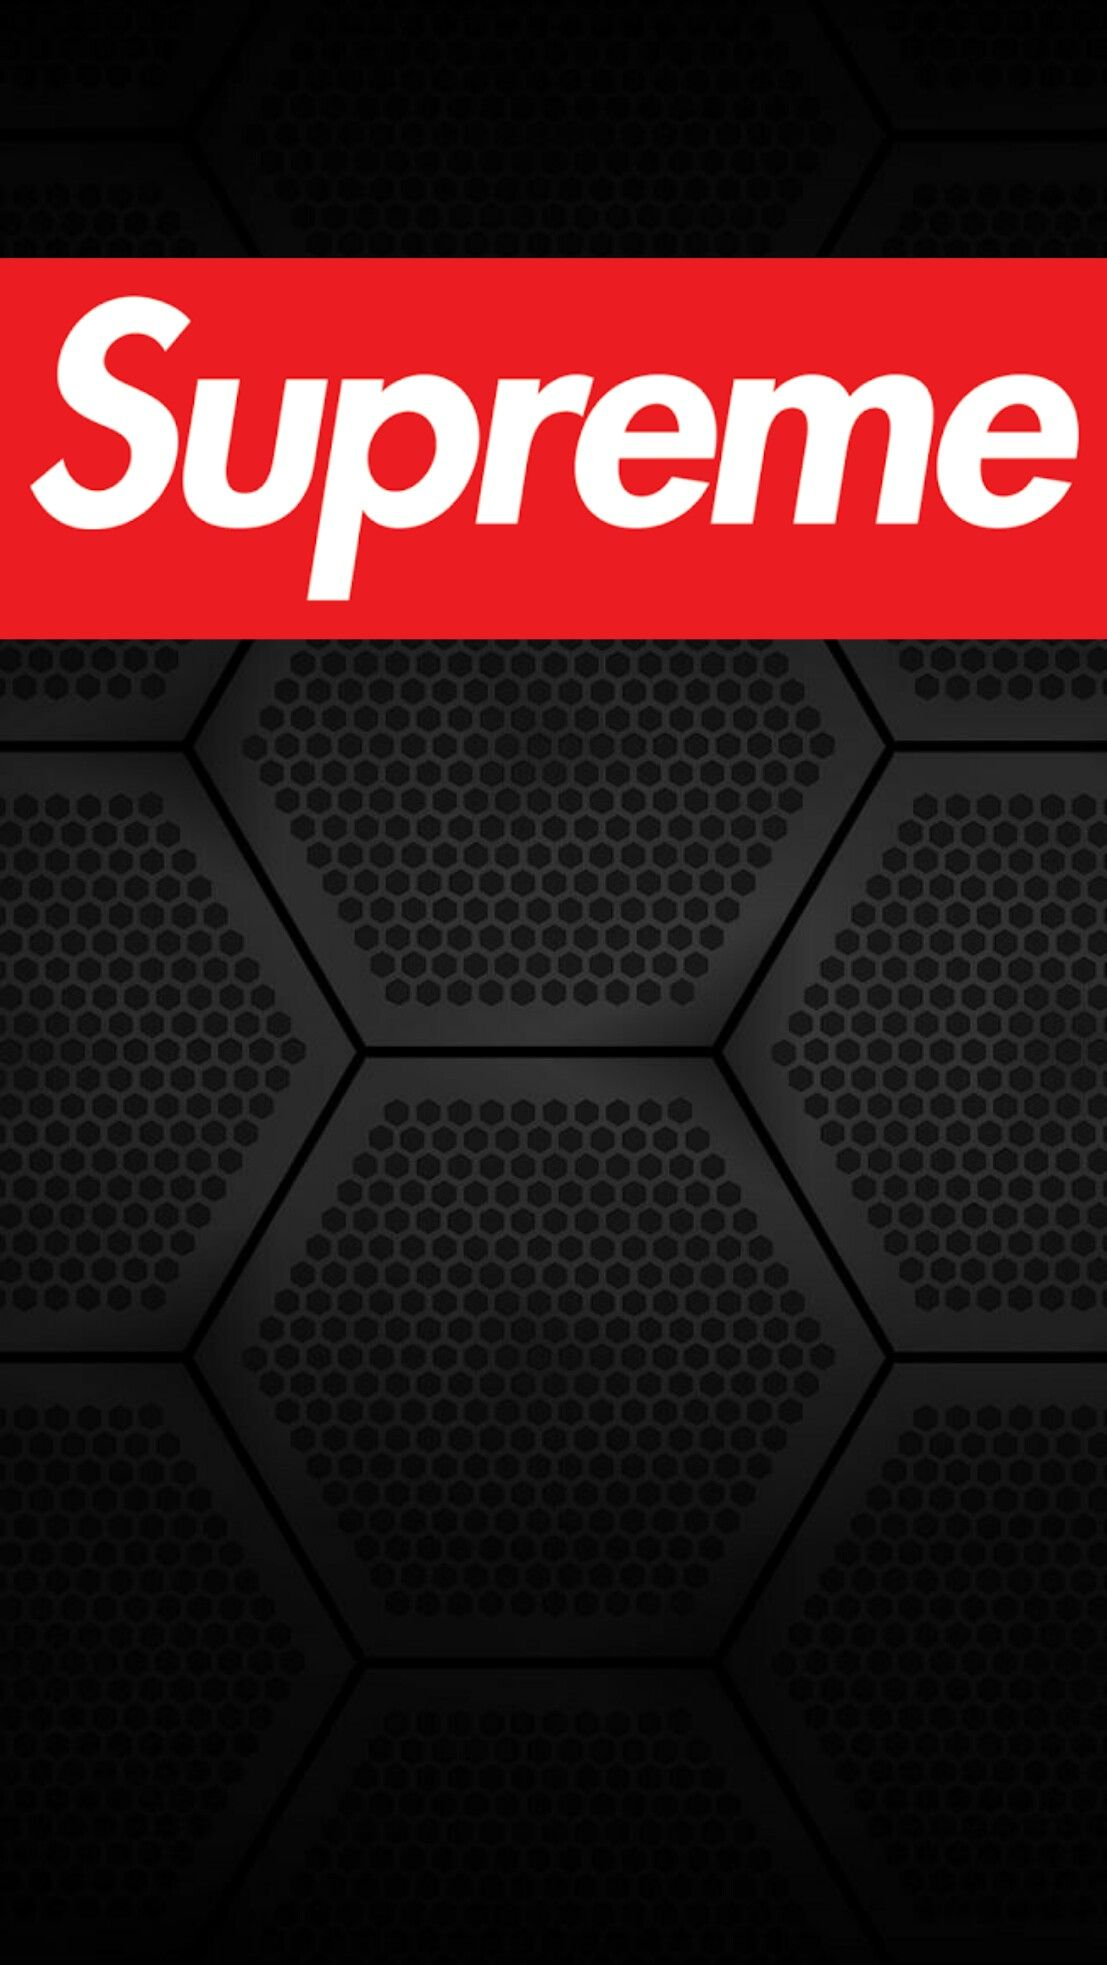 Samsung Edge S6 Supreme Black Wallpaper Android Iphone